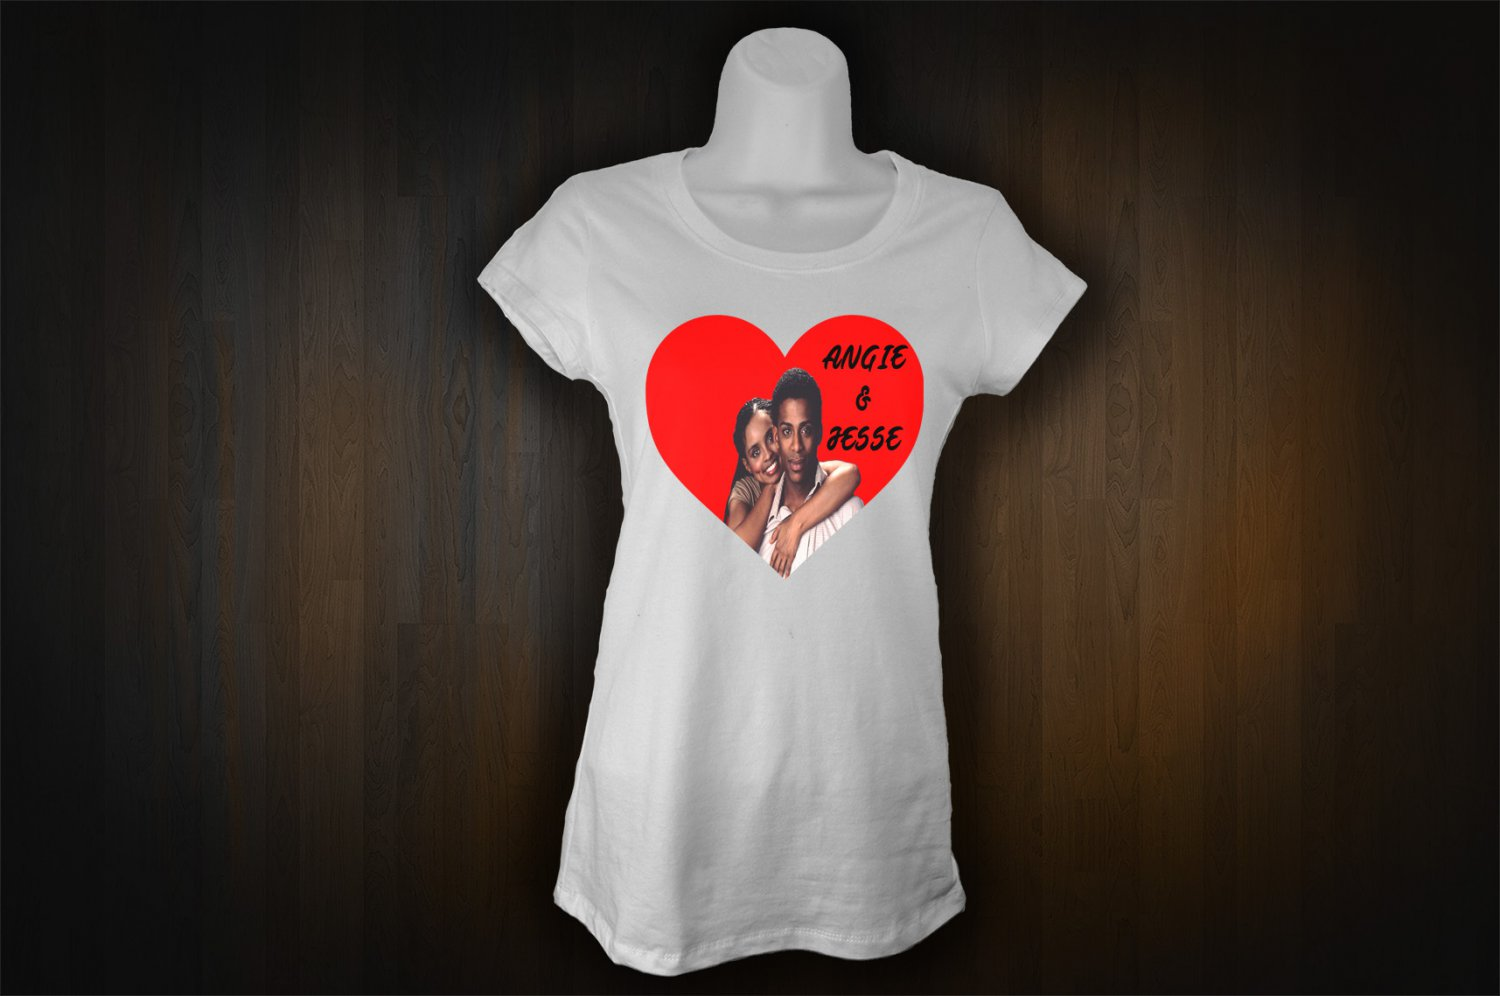 ANGIE AND JESSE T-SHIRT(2X-LARGE) ALL MY CHILDREN